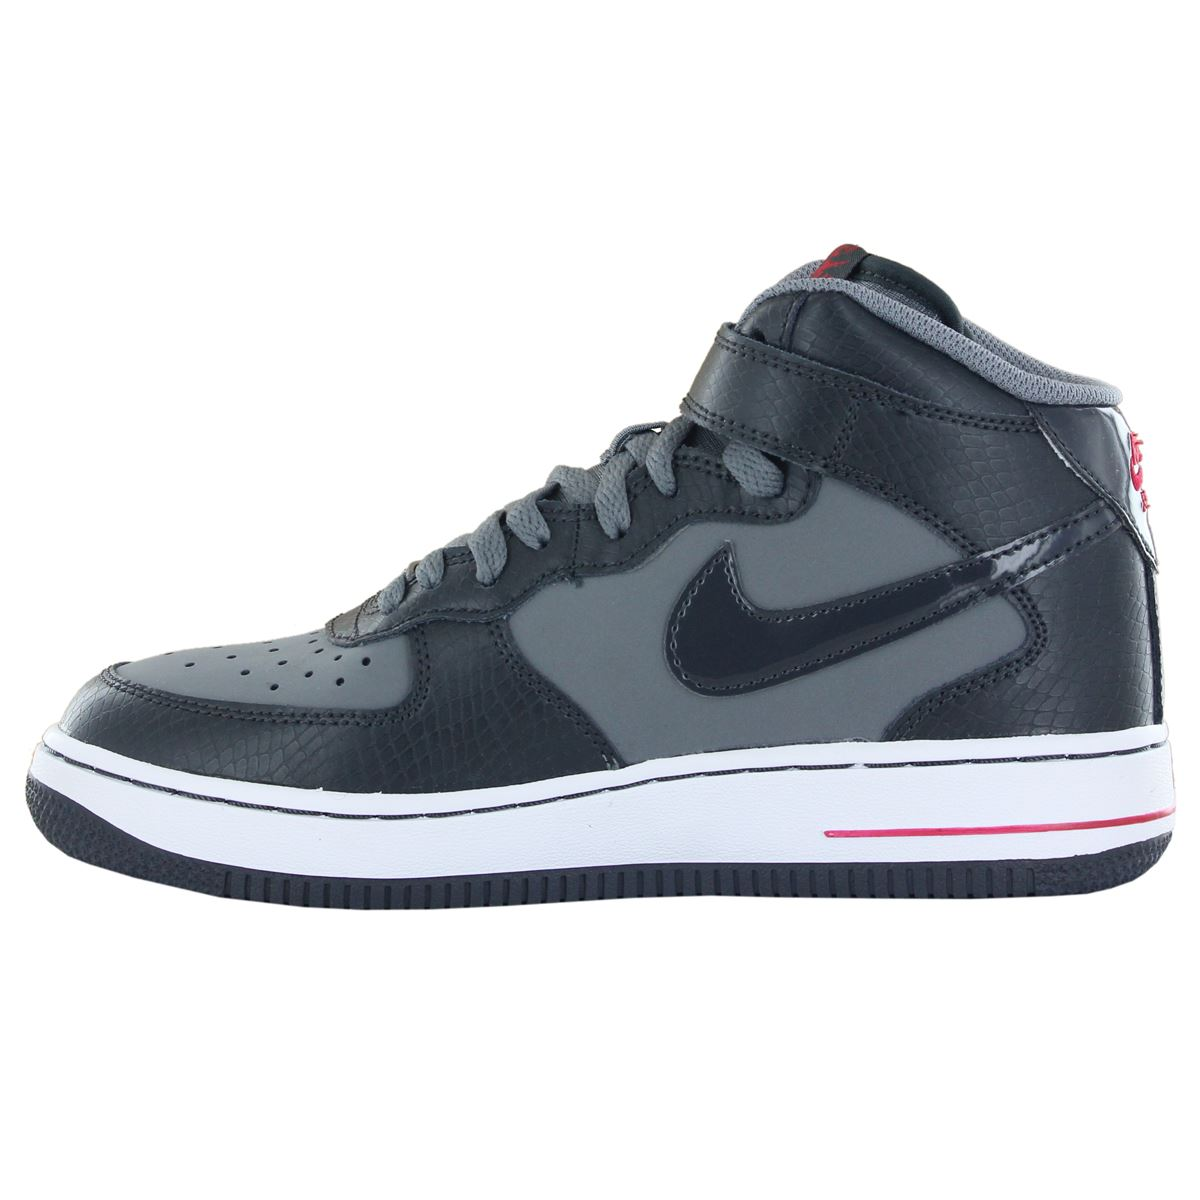 nike air force 1 mid leather kids trainers ebay. Black Bedroom Furniture Sets. Home Design Ideas